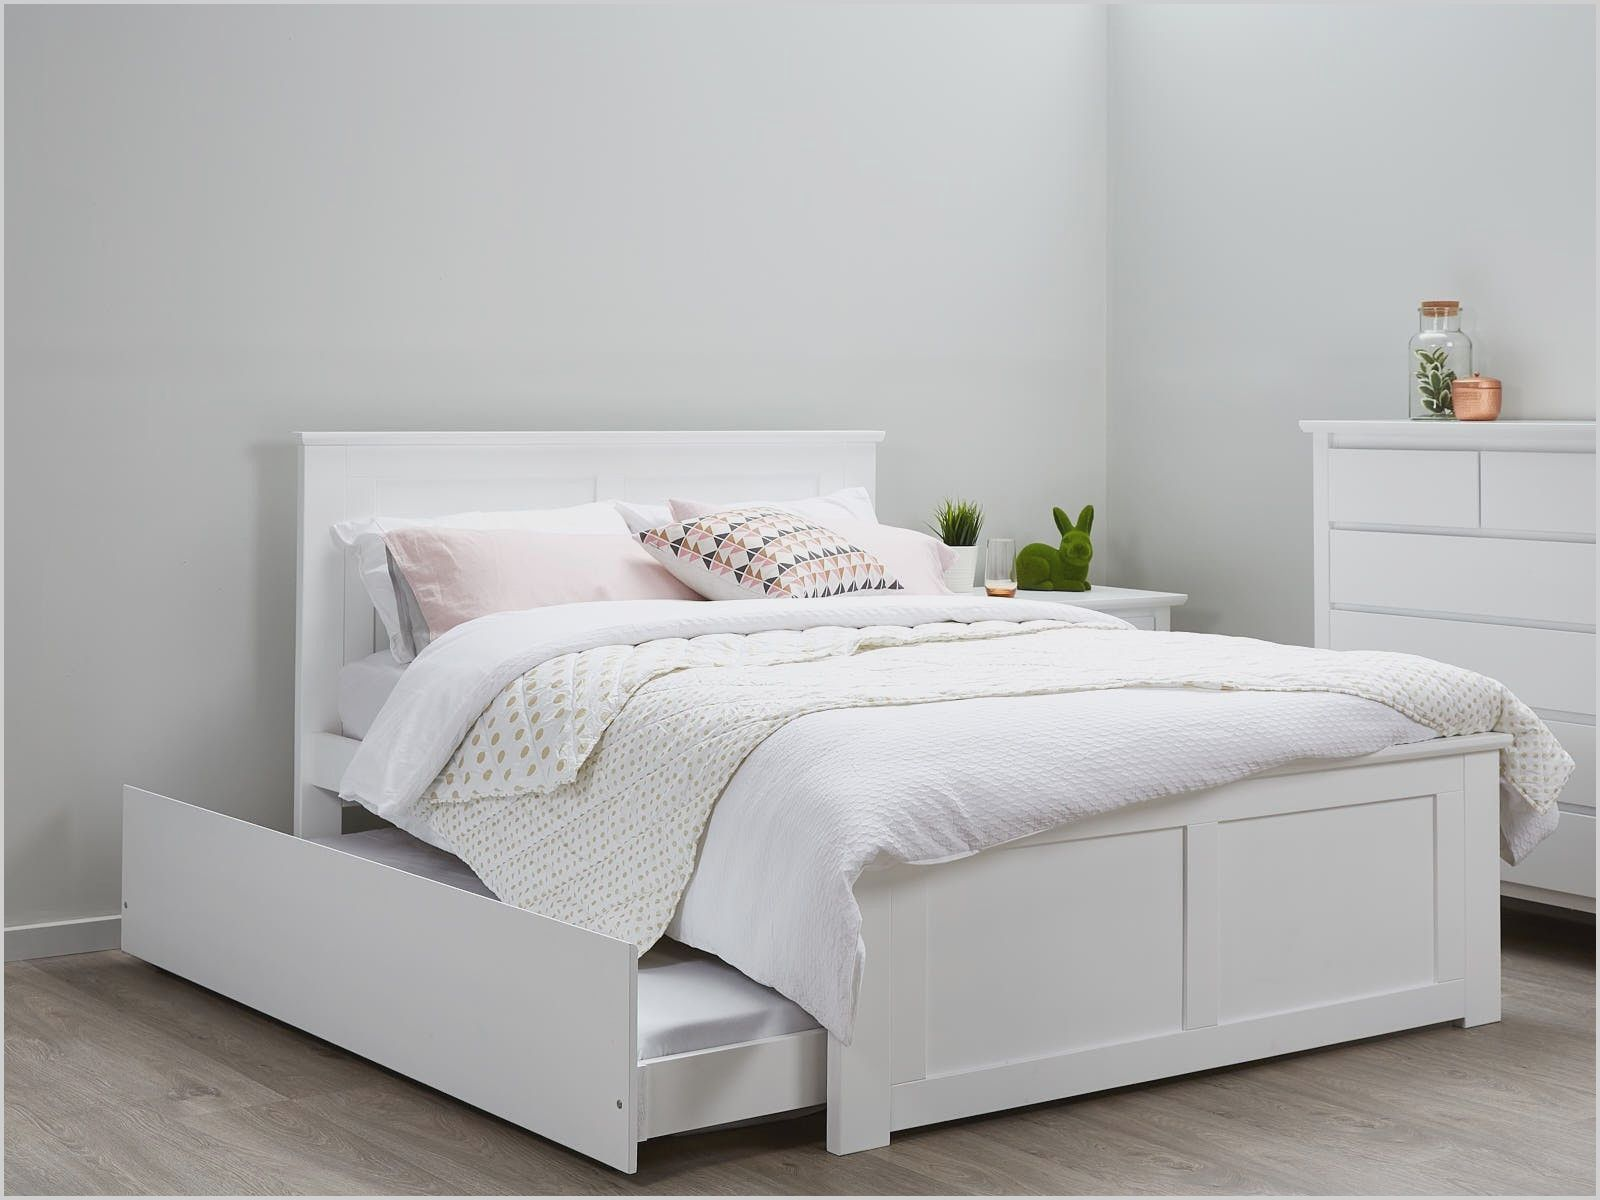 Youth White Bedroom Furniture In 2020 White Bed Frame Bedroom Furniture Uk Twin Bedroom Furniture Sets